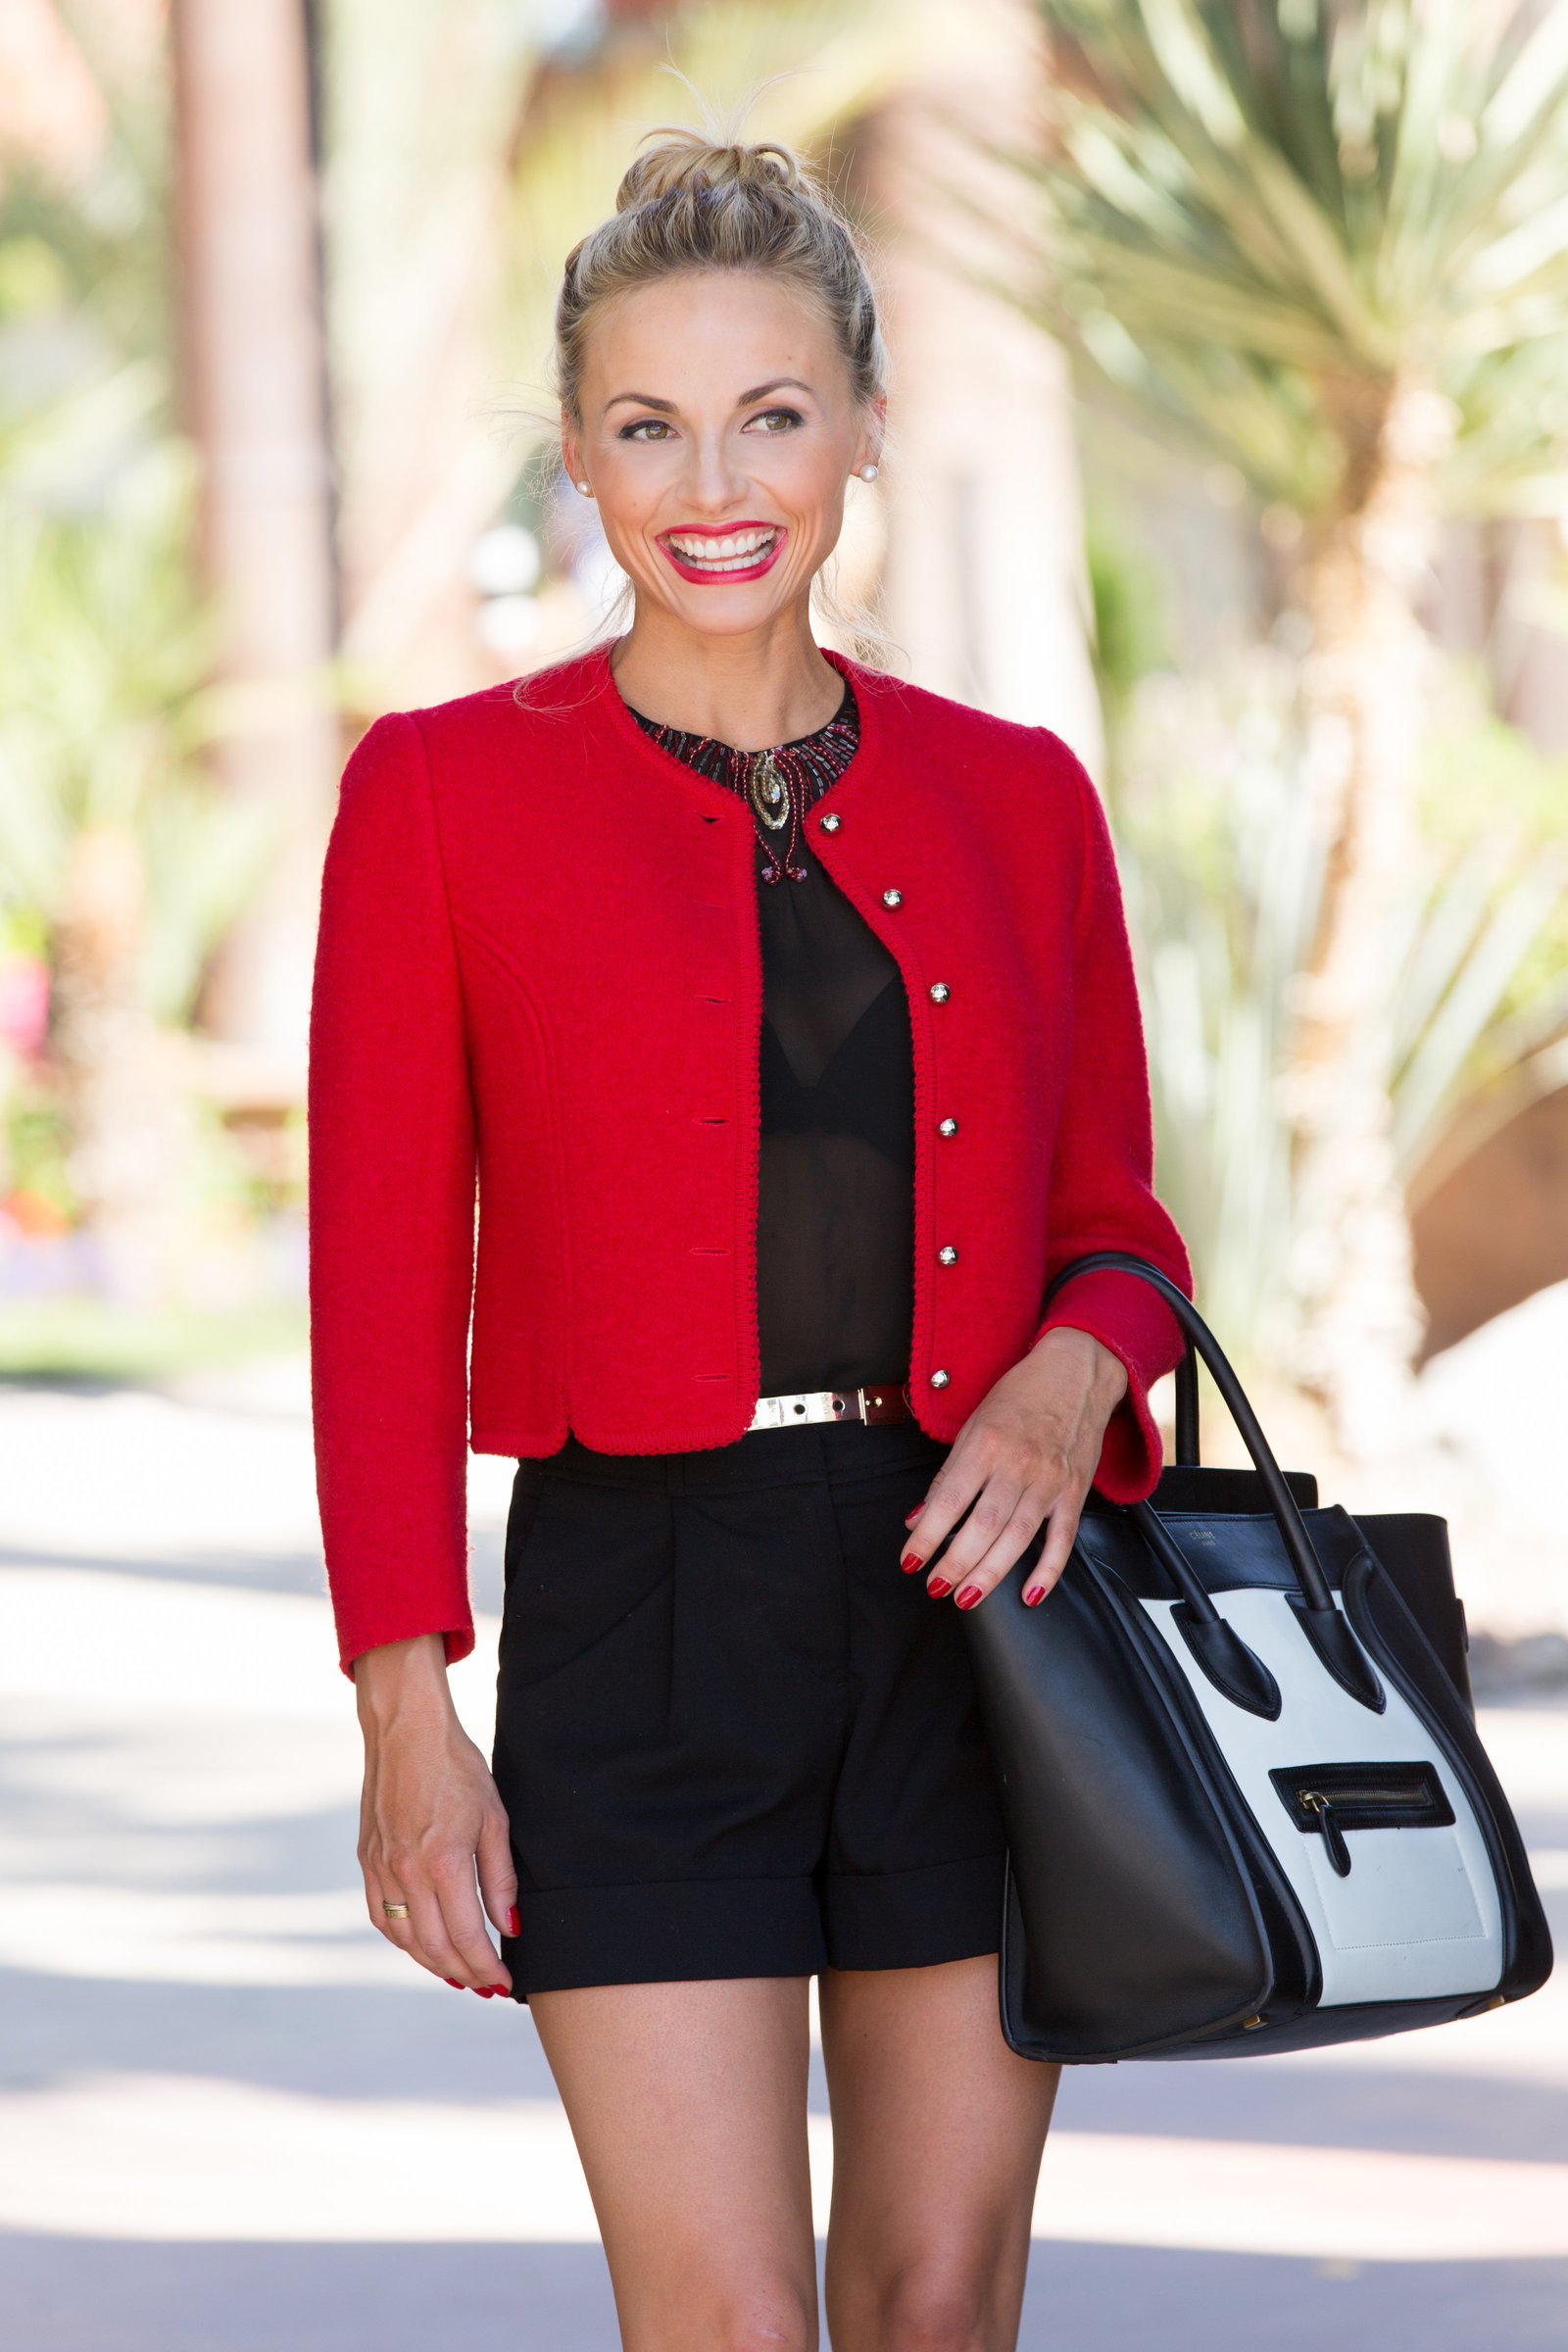 Lifestyle Fashion Blogger, Palm Springs Photographer Erica Mendenhall